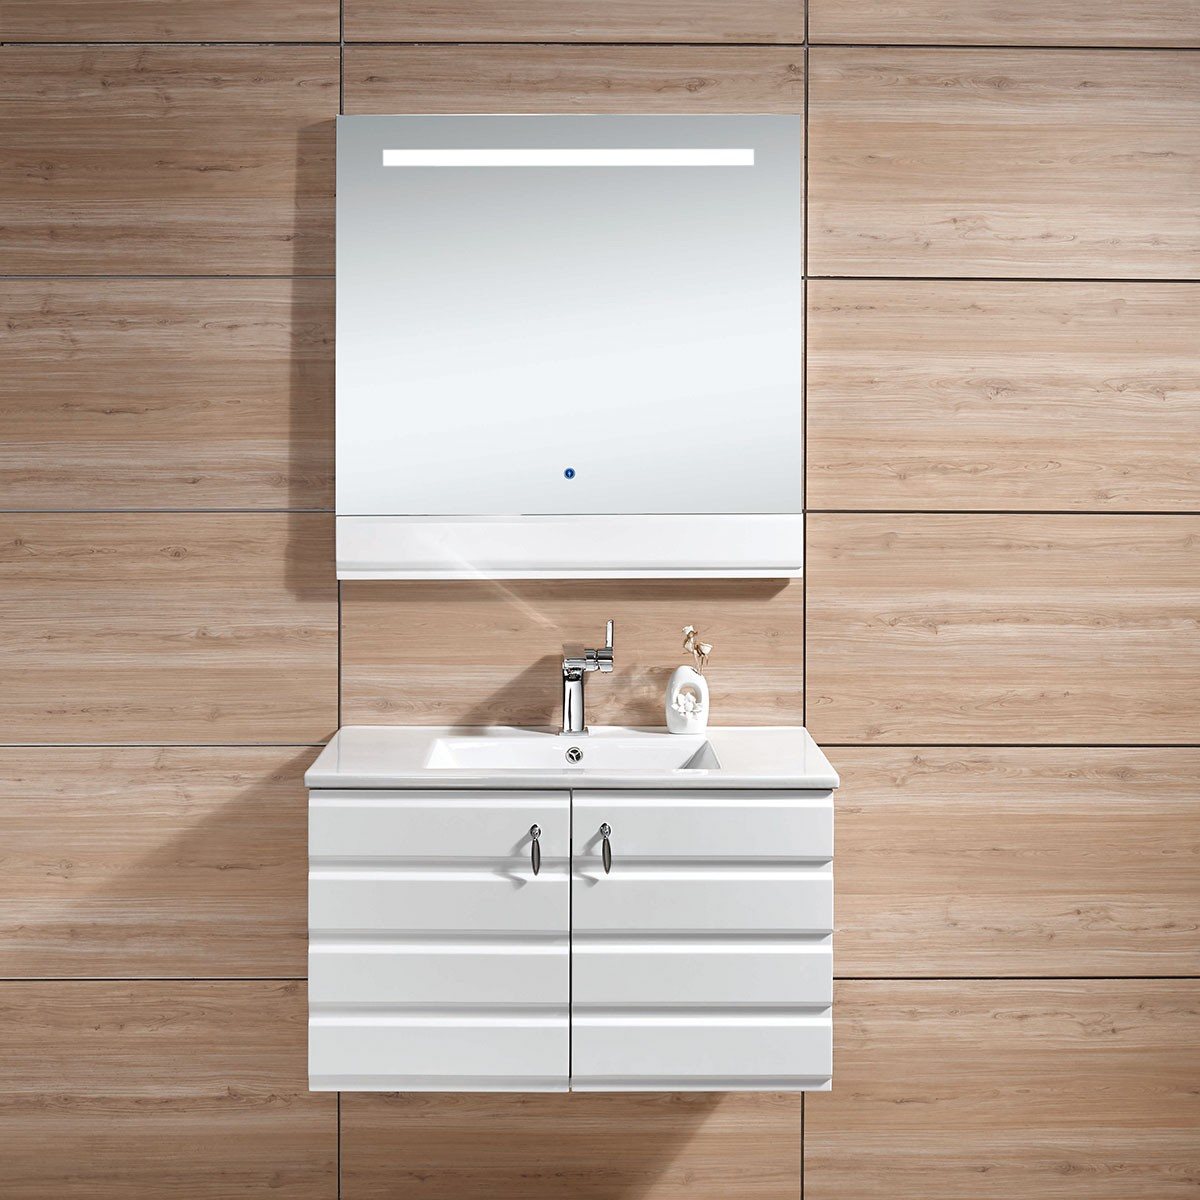 31 In. Wall Mount Bathroom Vanity Set with LED Mirror (DK-613800-SET)